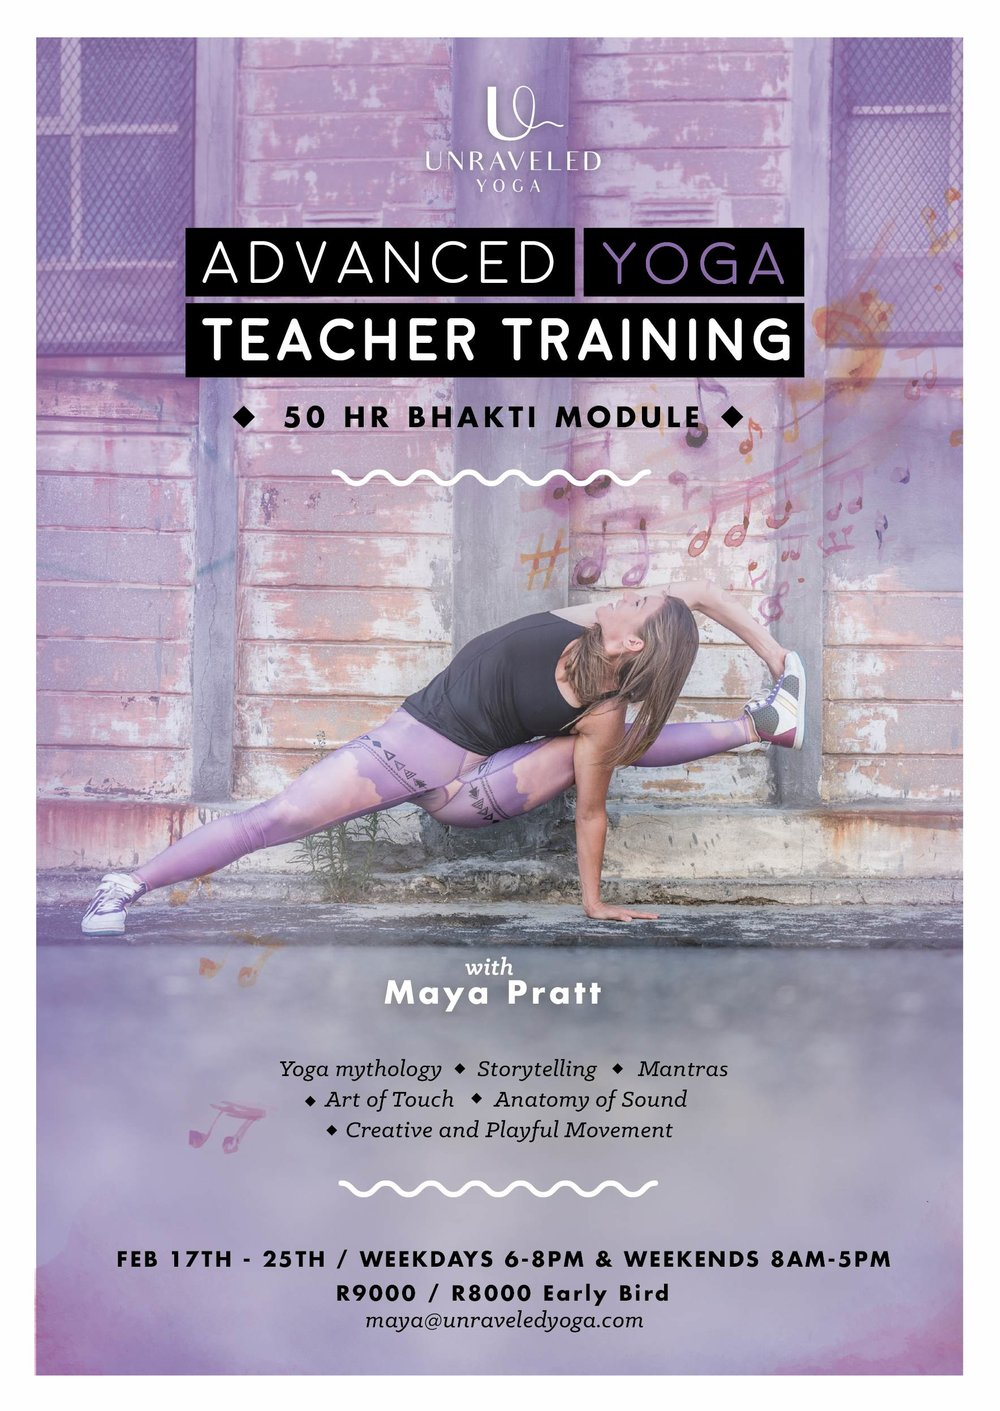 cape town yoga advanced teacher training bhakti module